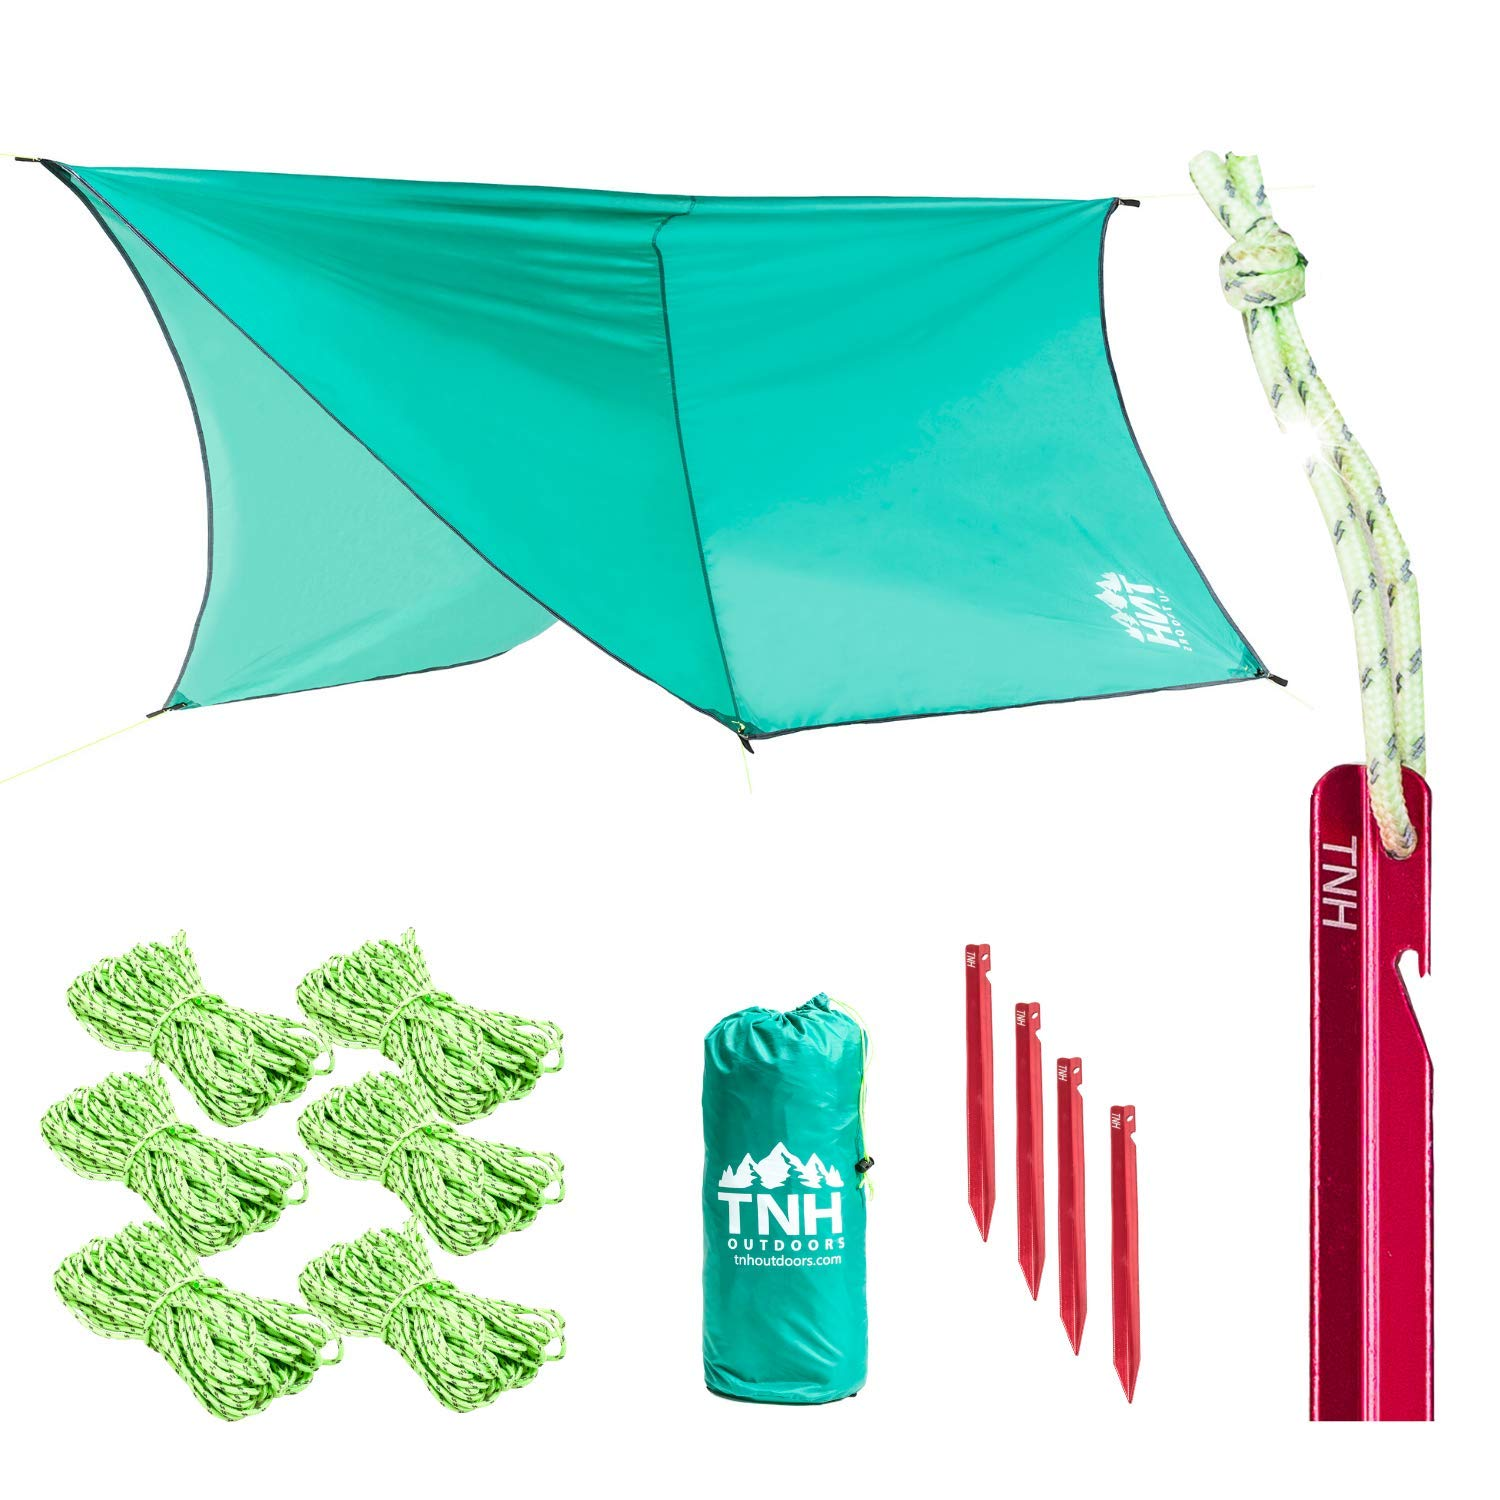 TNH Outdoors Hammock Fly Tarp 9 x 12 ft, Hexagonal Rain Fly or Lightweight Tent for Camping, Stronger Single Latch Aluminum Stakes, Ready for Double Hammocks & Storms by TNH Outdoors